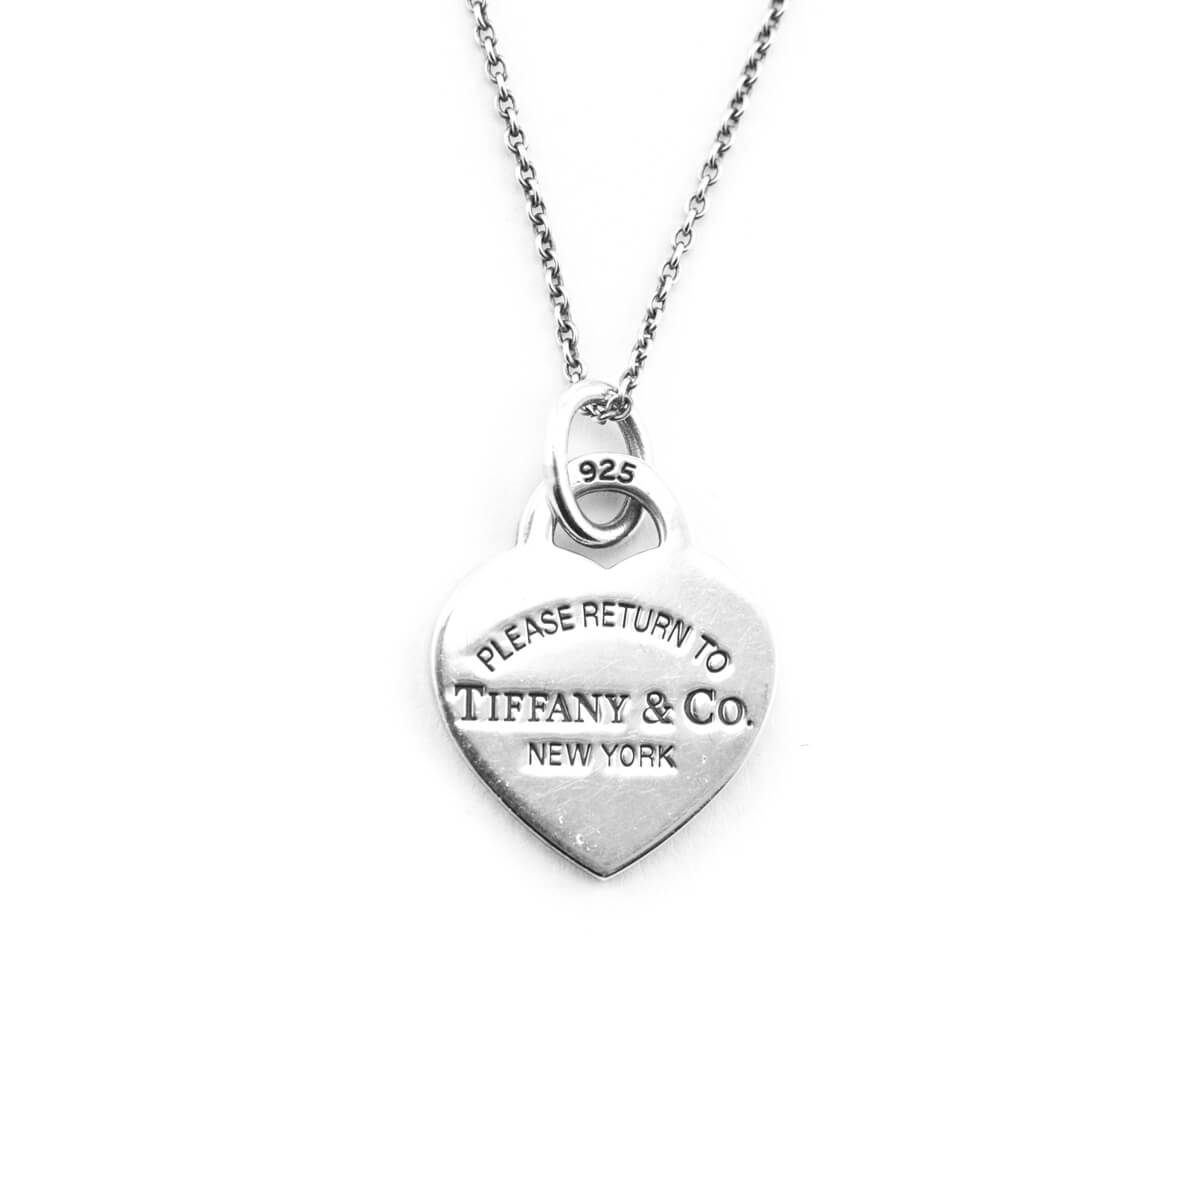 Tiffany Co Sterling Silver Return To Tiffany Heart Pendant Necklace